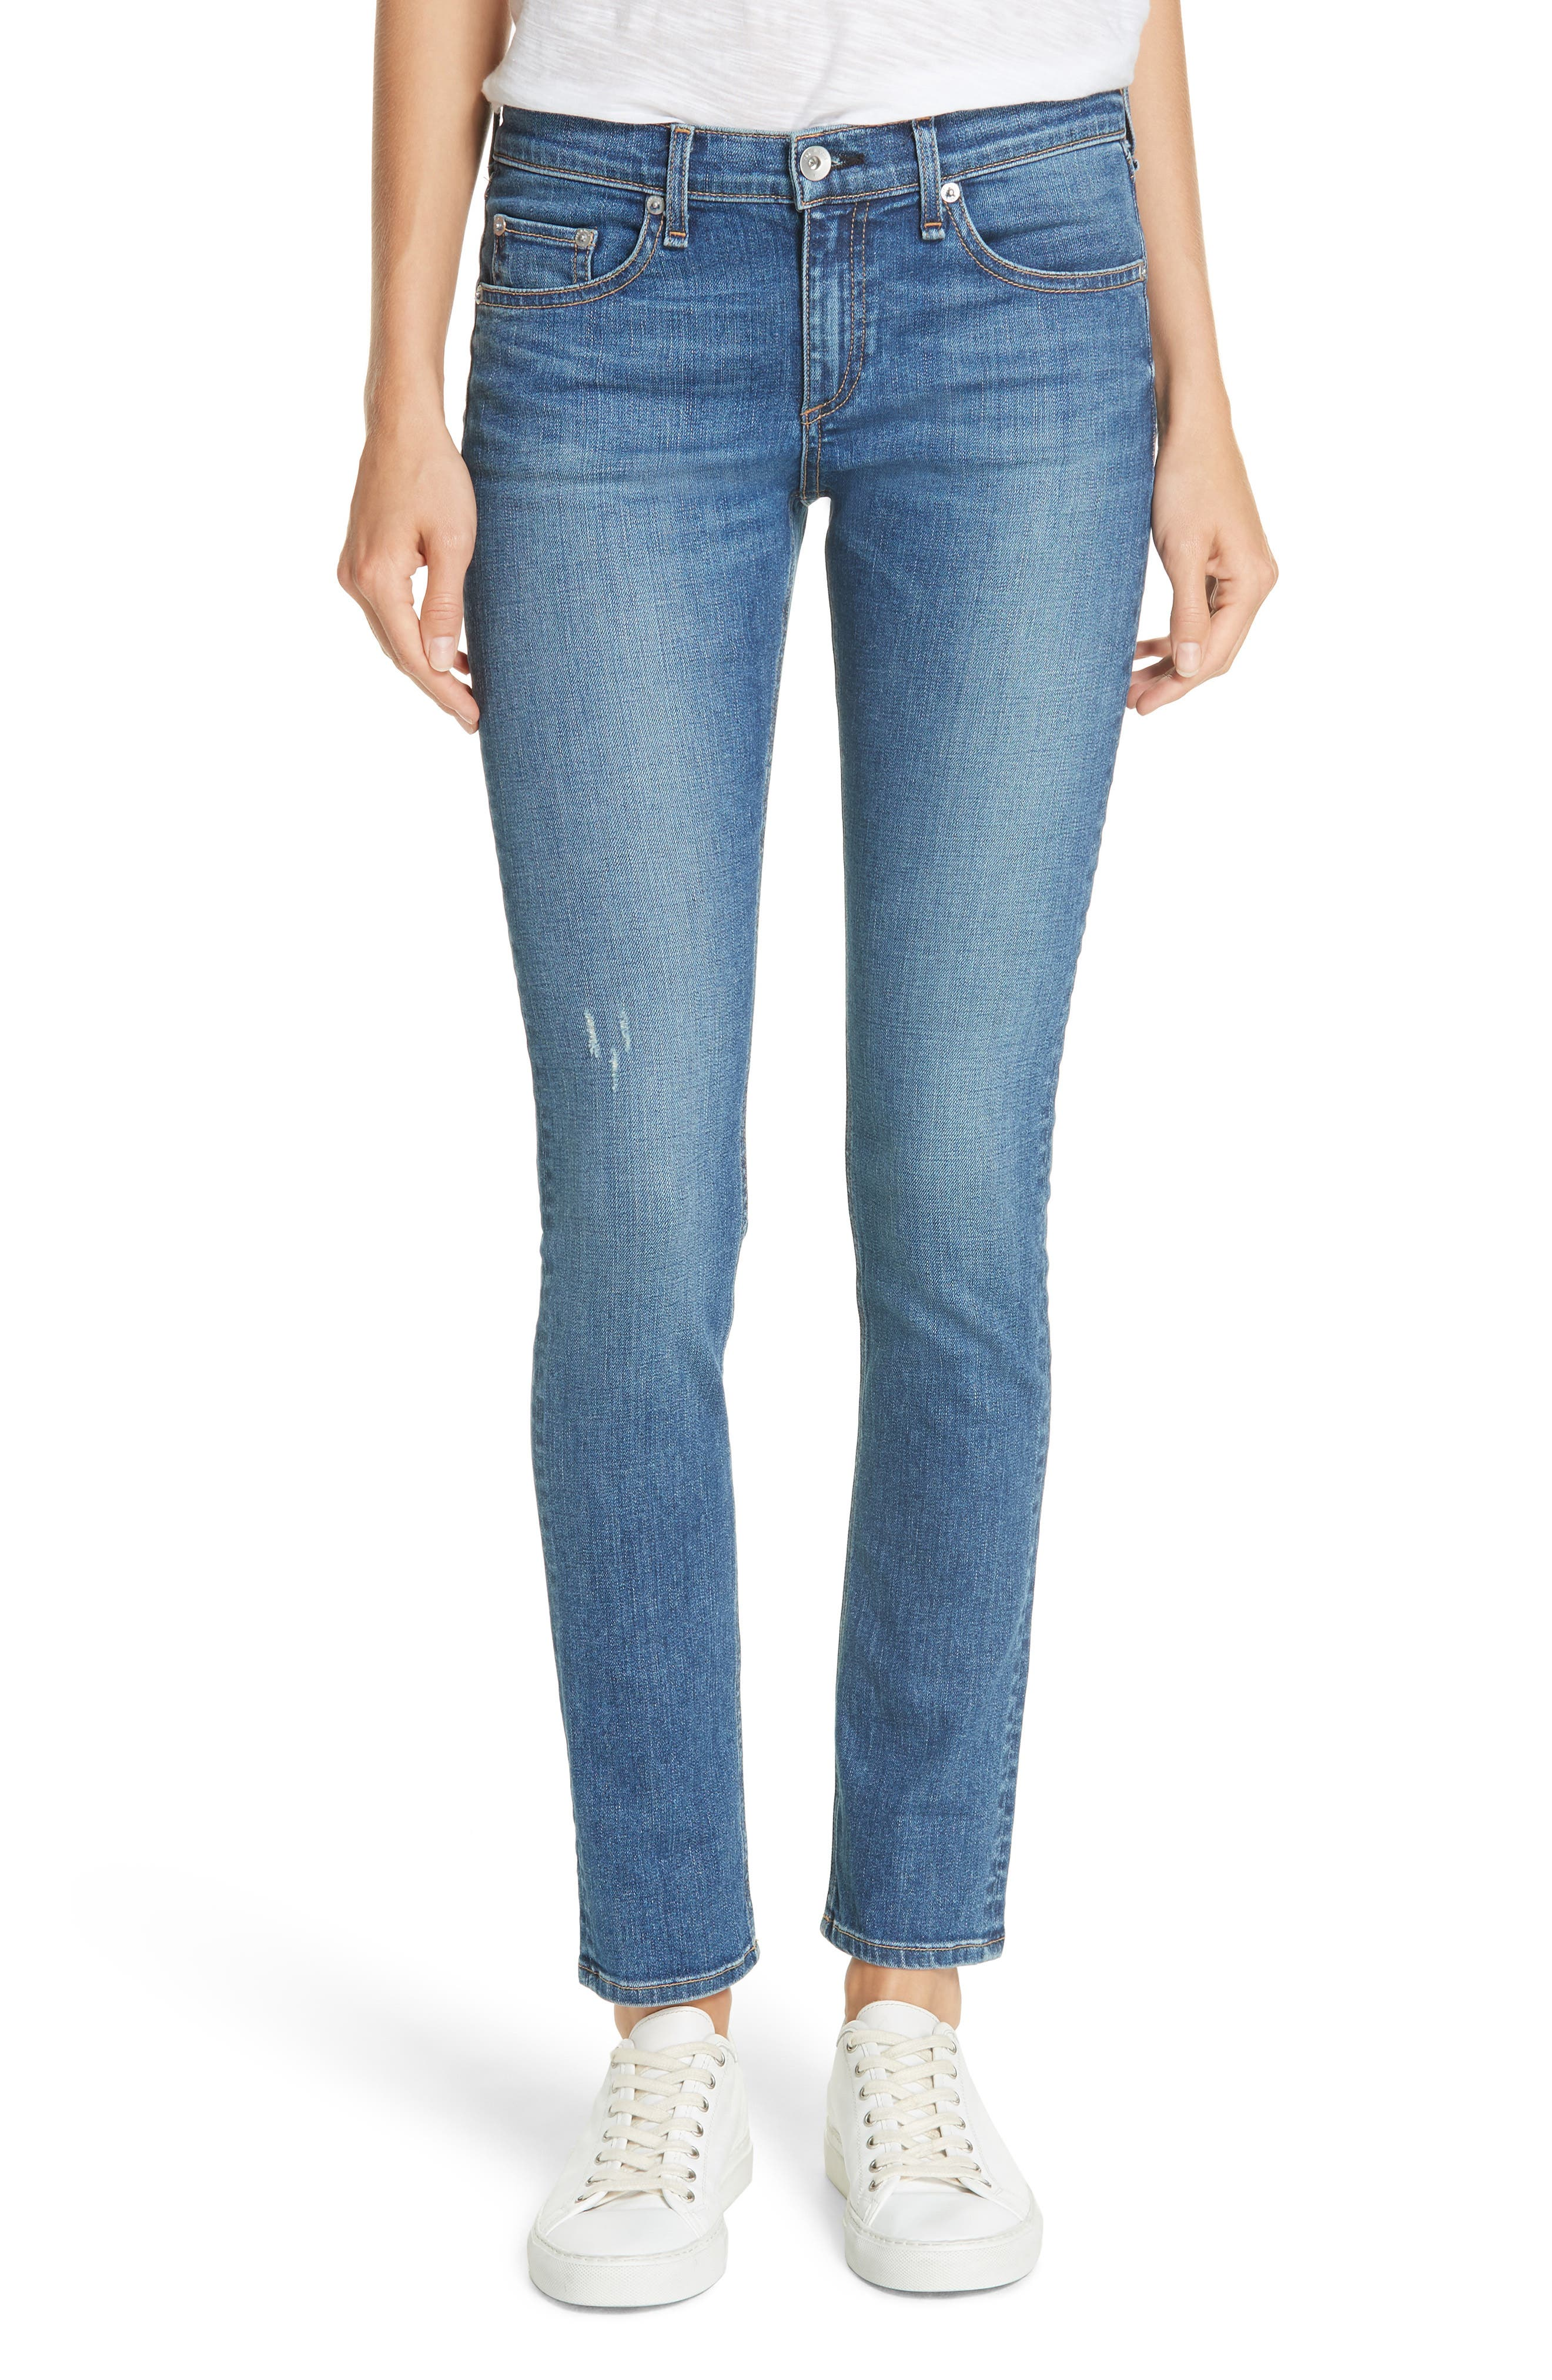 RAG & BONE,                             Skinny Jeans,                             Main thumbnail 1, color,                             420